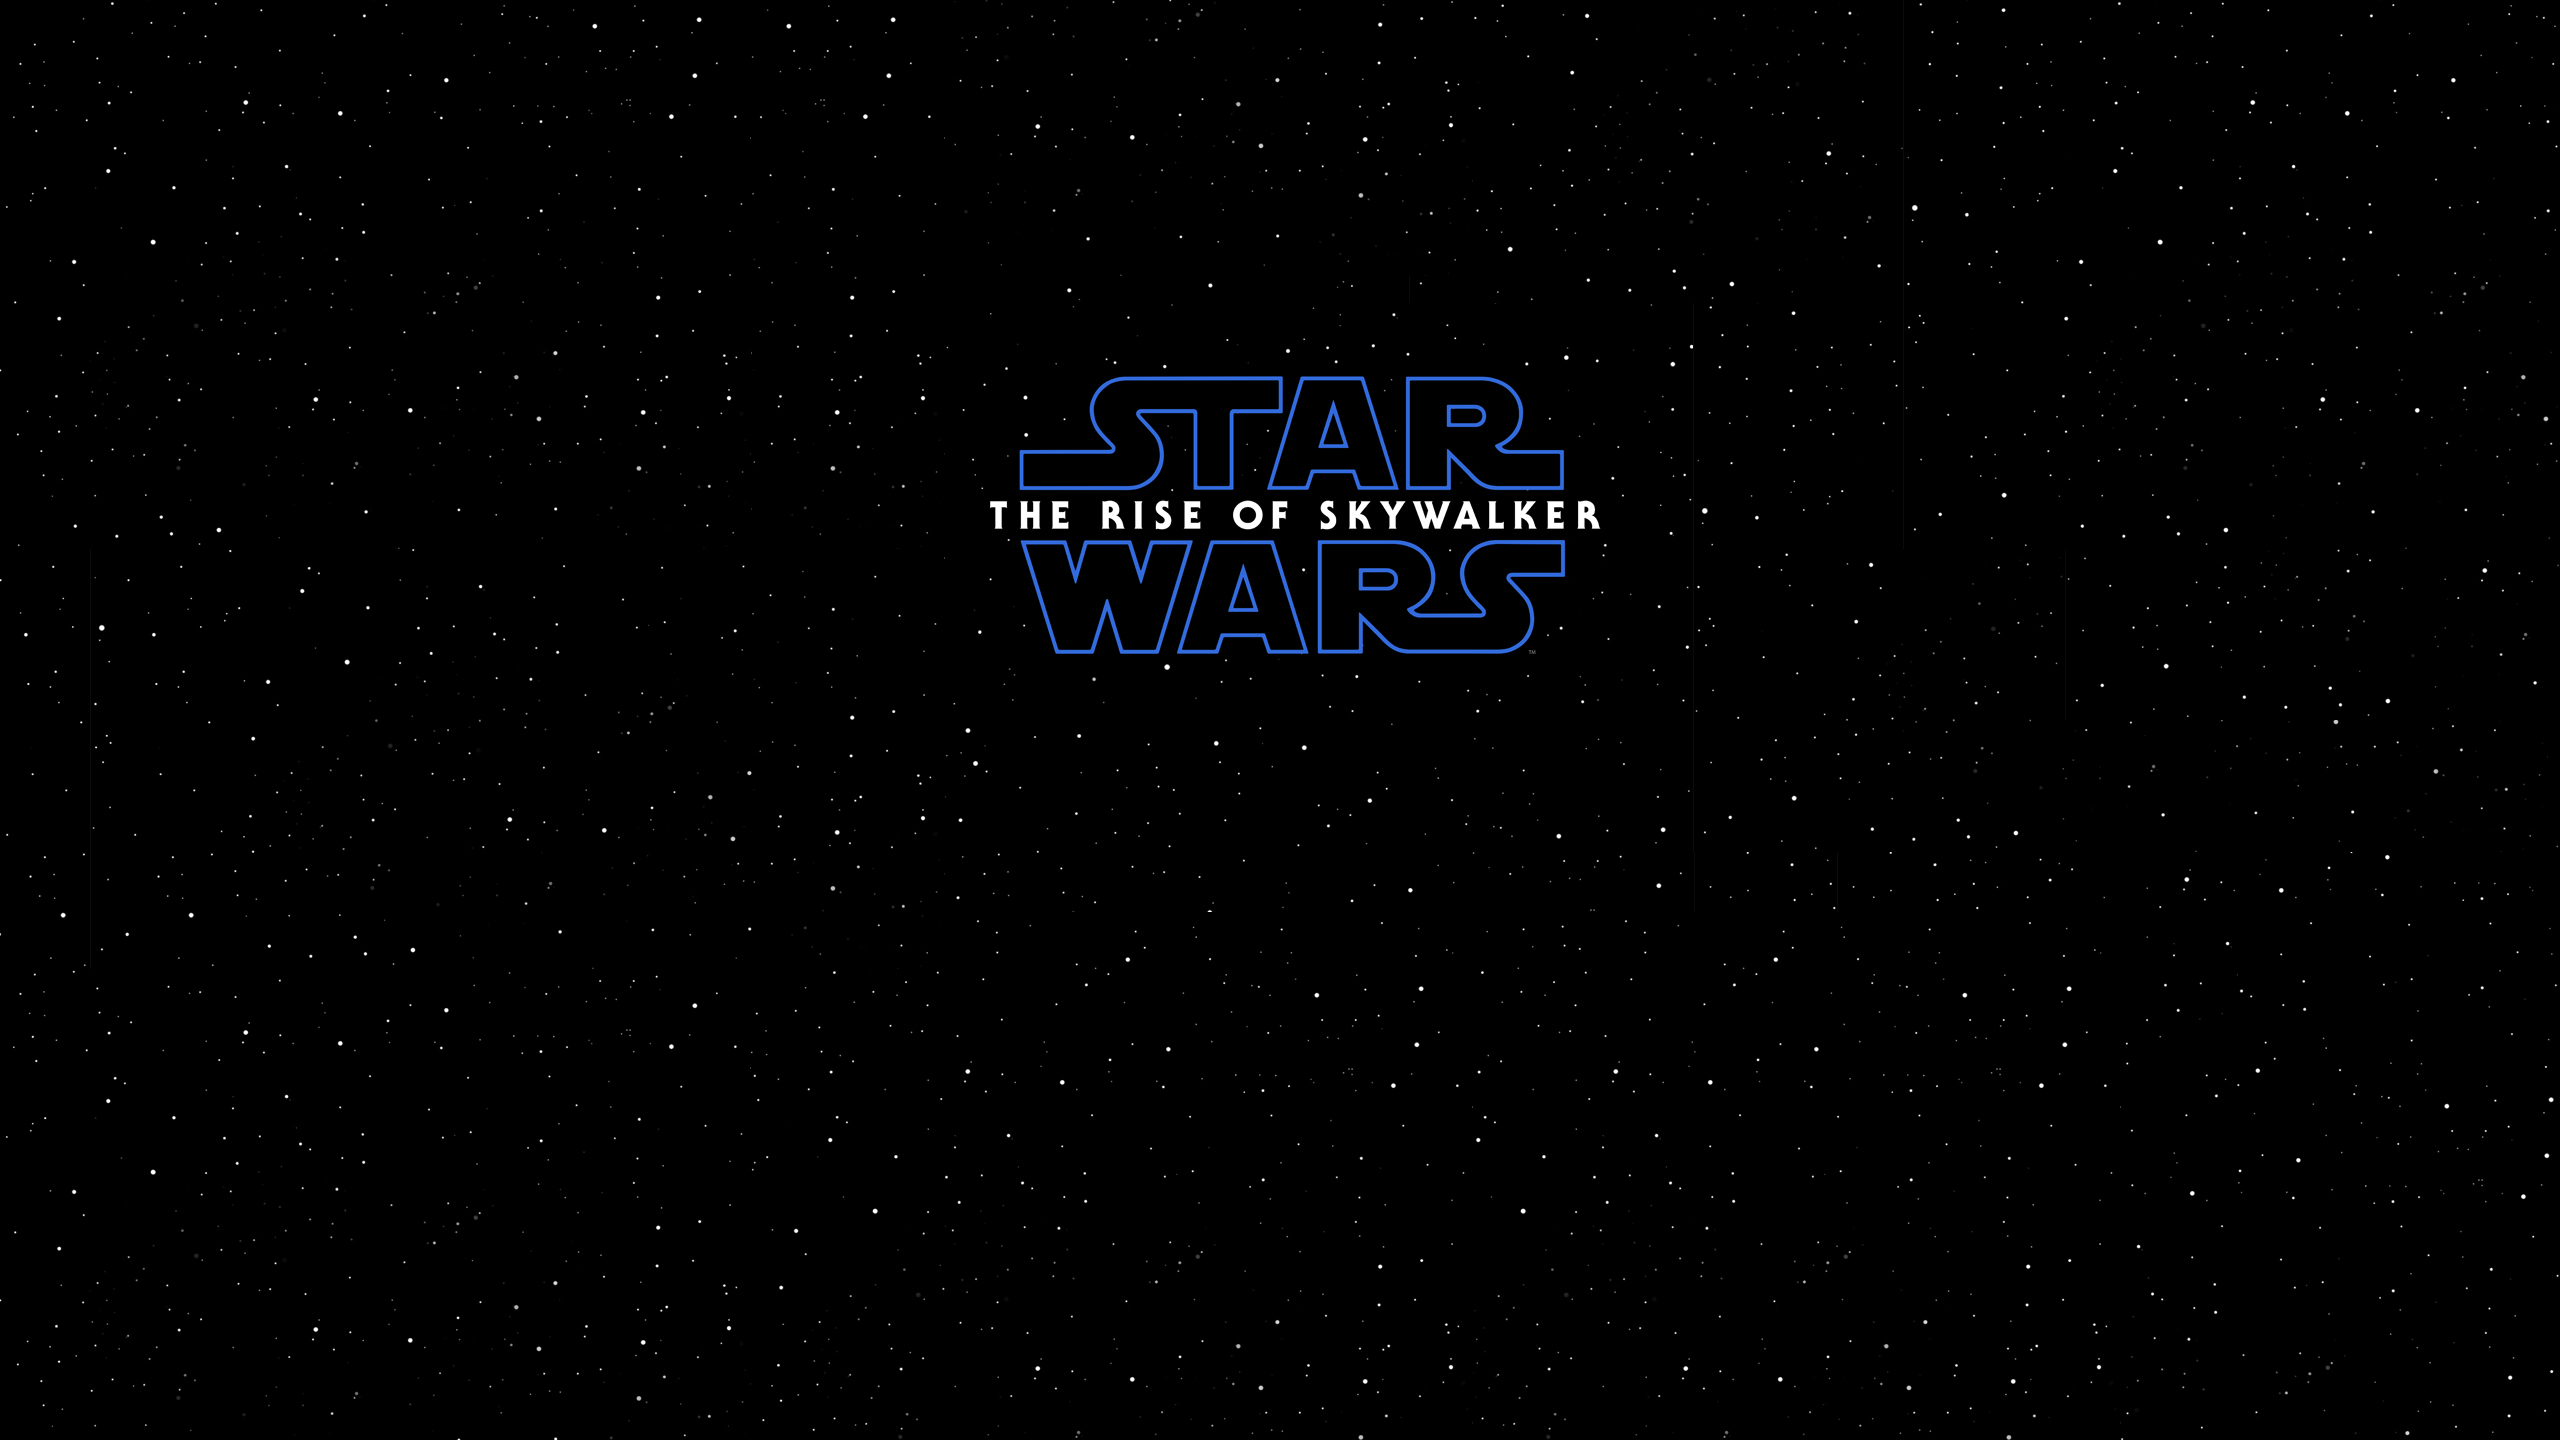 6805 Star Wars The Rise Of Skywalker 2019 Android Iphone Hd Wallpaper Background Download Png Jpg 2021